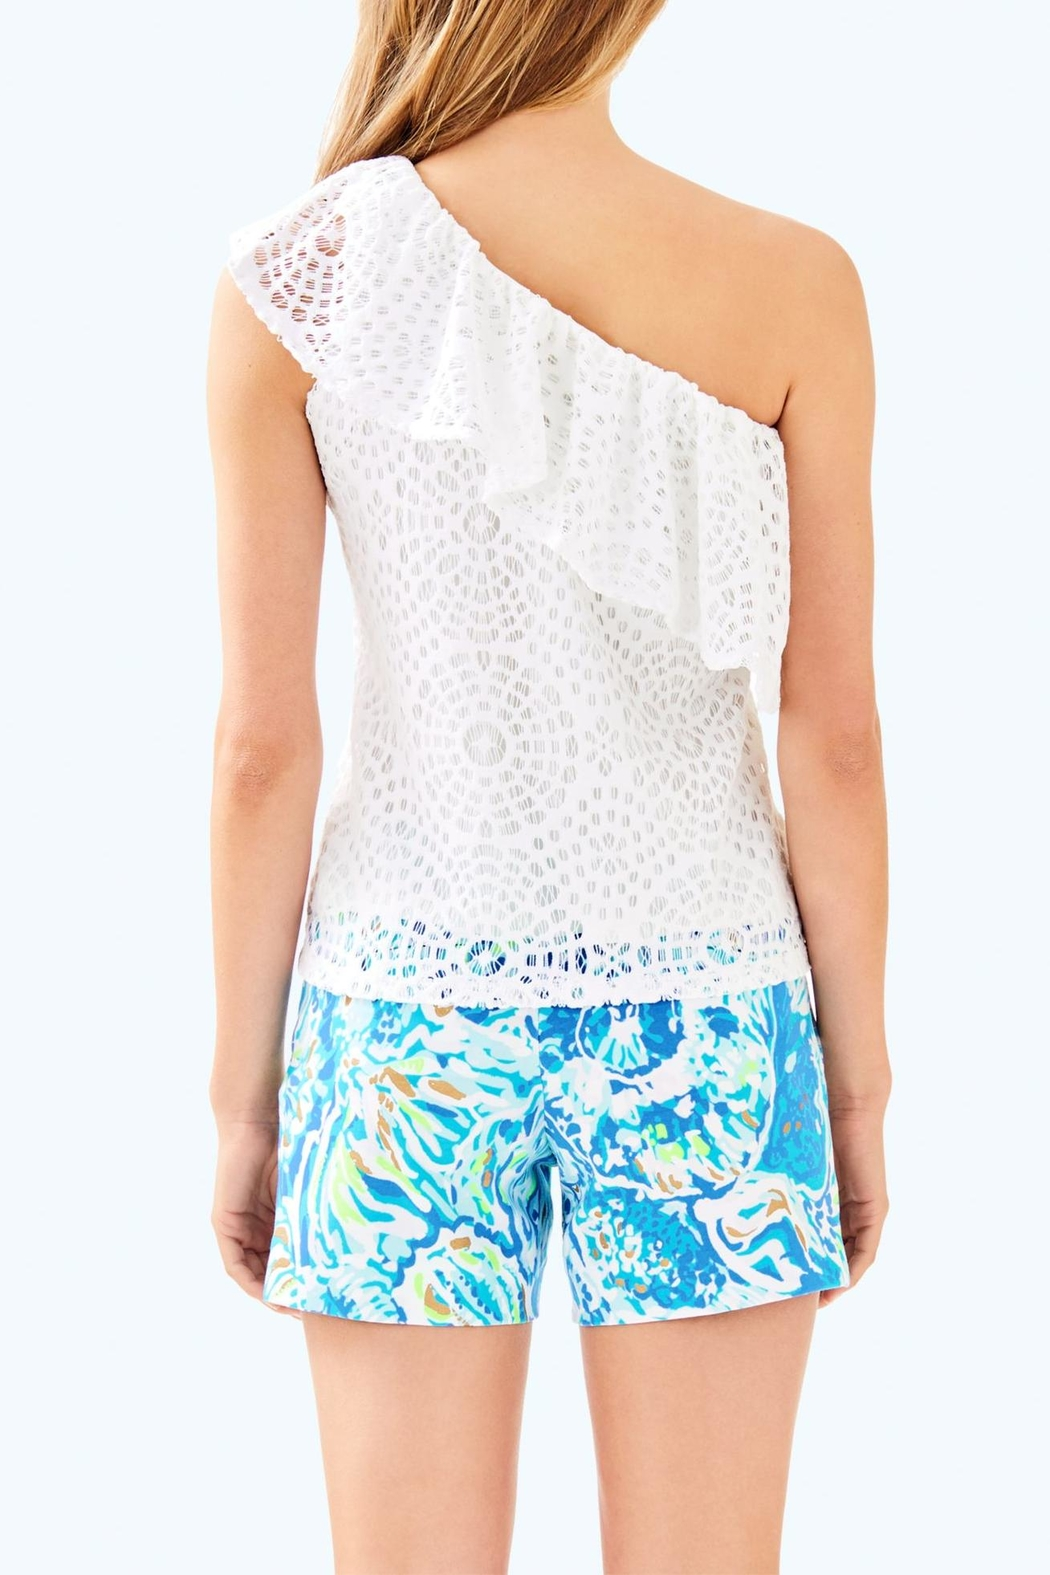 Lilly Pulitzer Matteo Top - Front Full Image